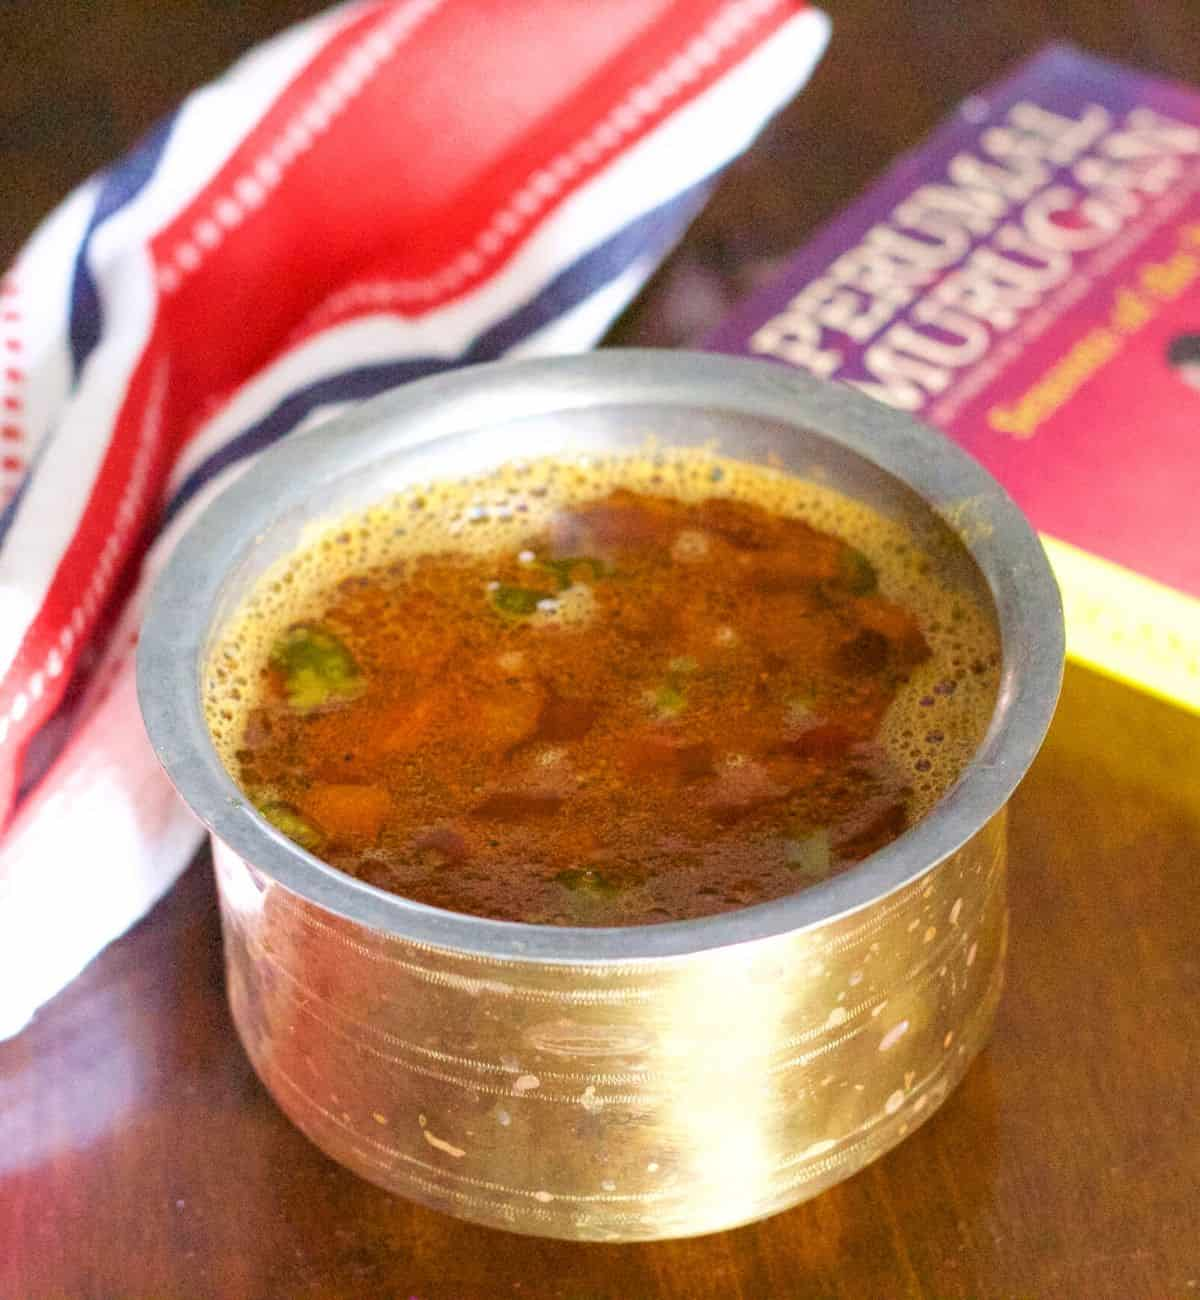 Reddish brown rasam in a brass vessel on a brown wooden background. Tomato slices seen floating on top. A red black and white napkin to the left and a book by Tamil author Perumal Murugan to the right, with a pink red cover